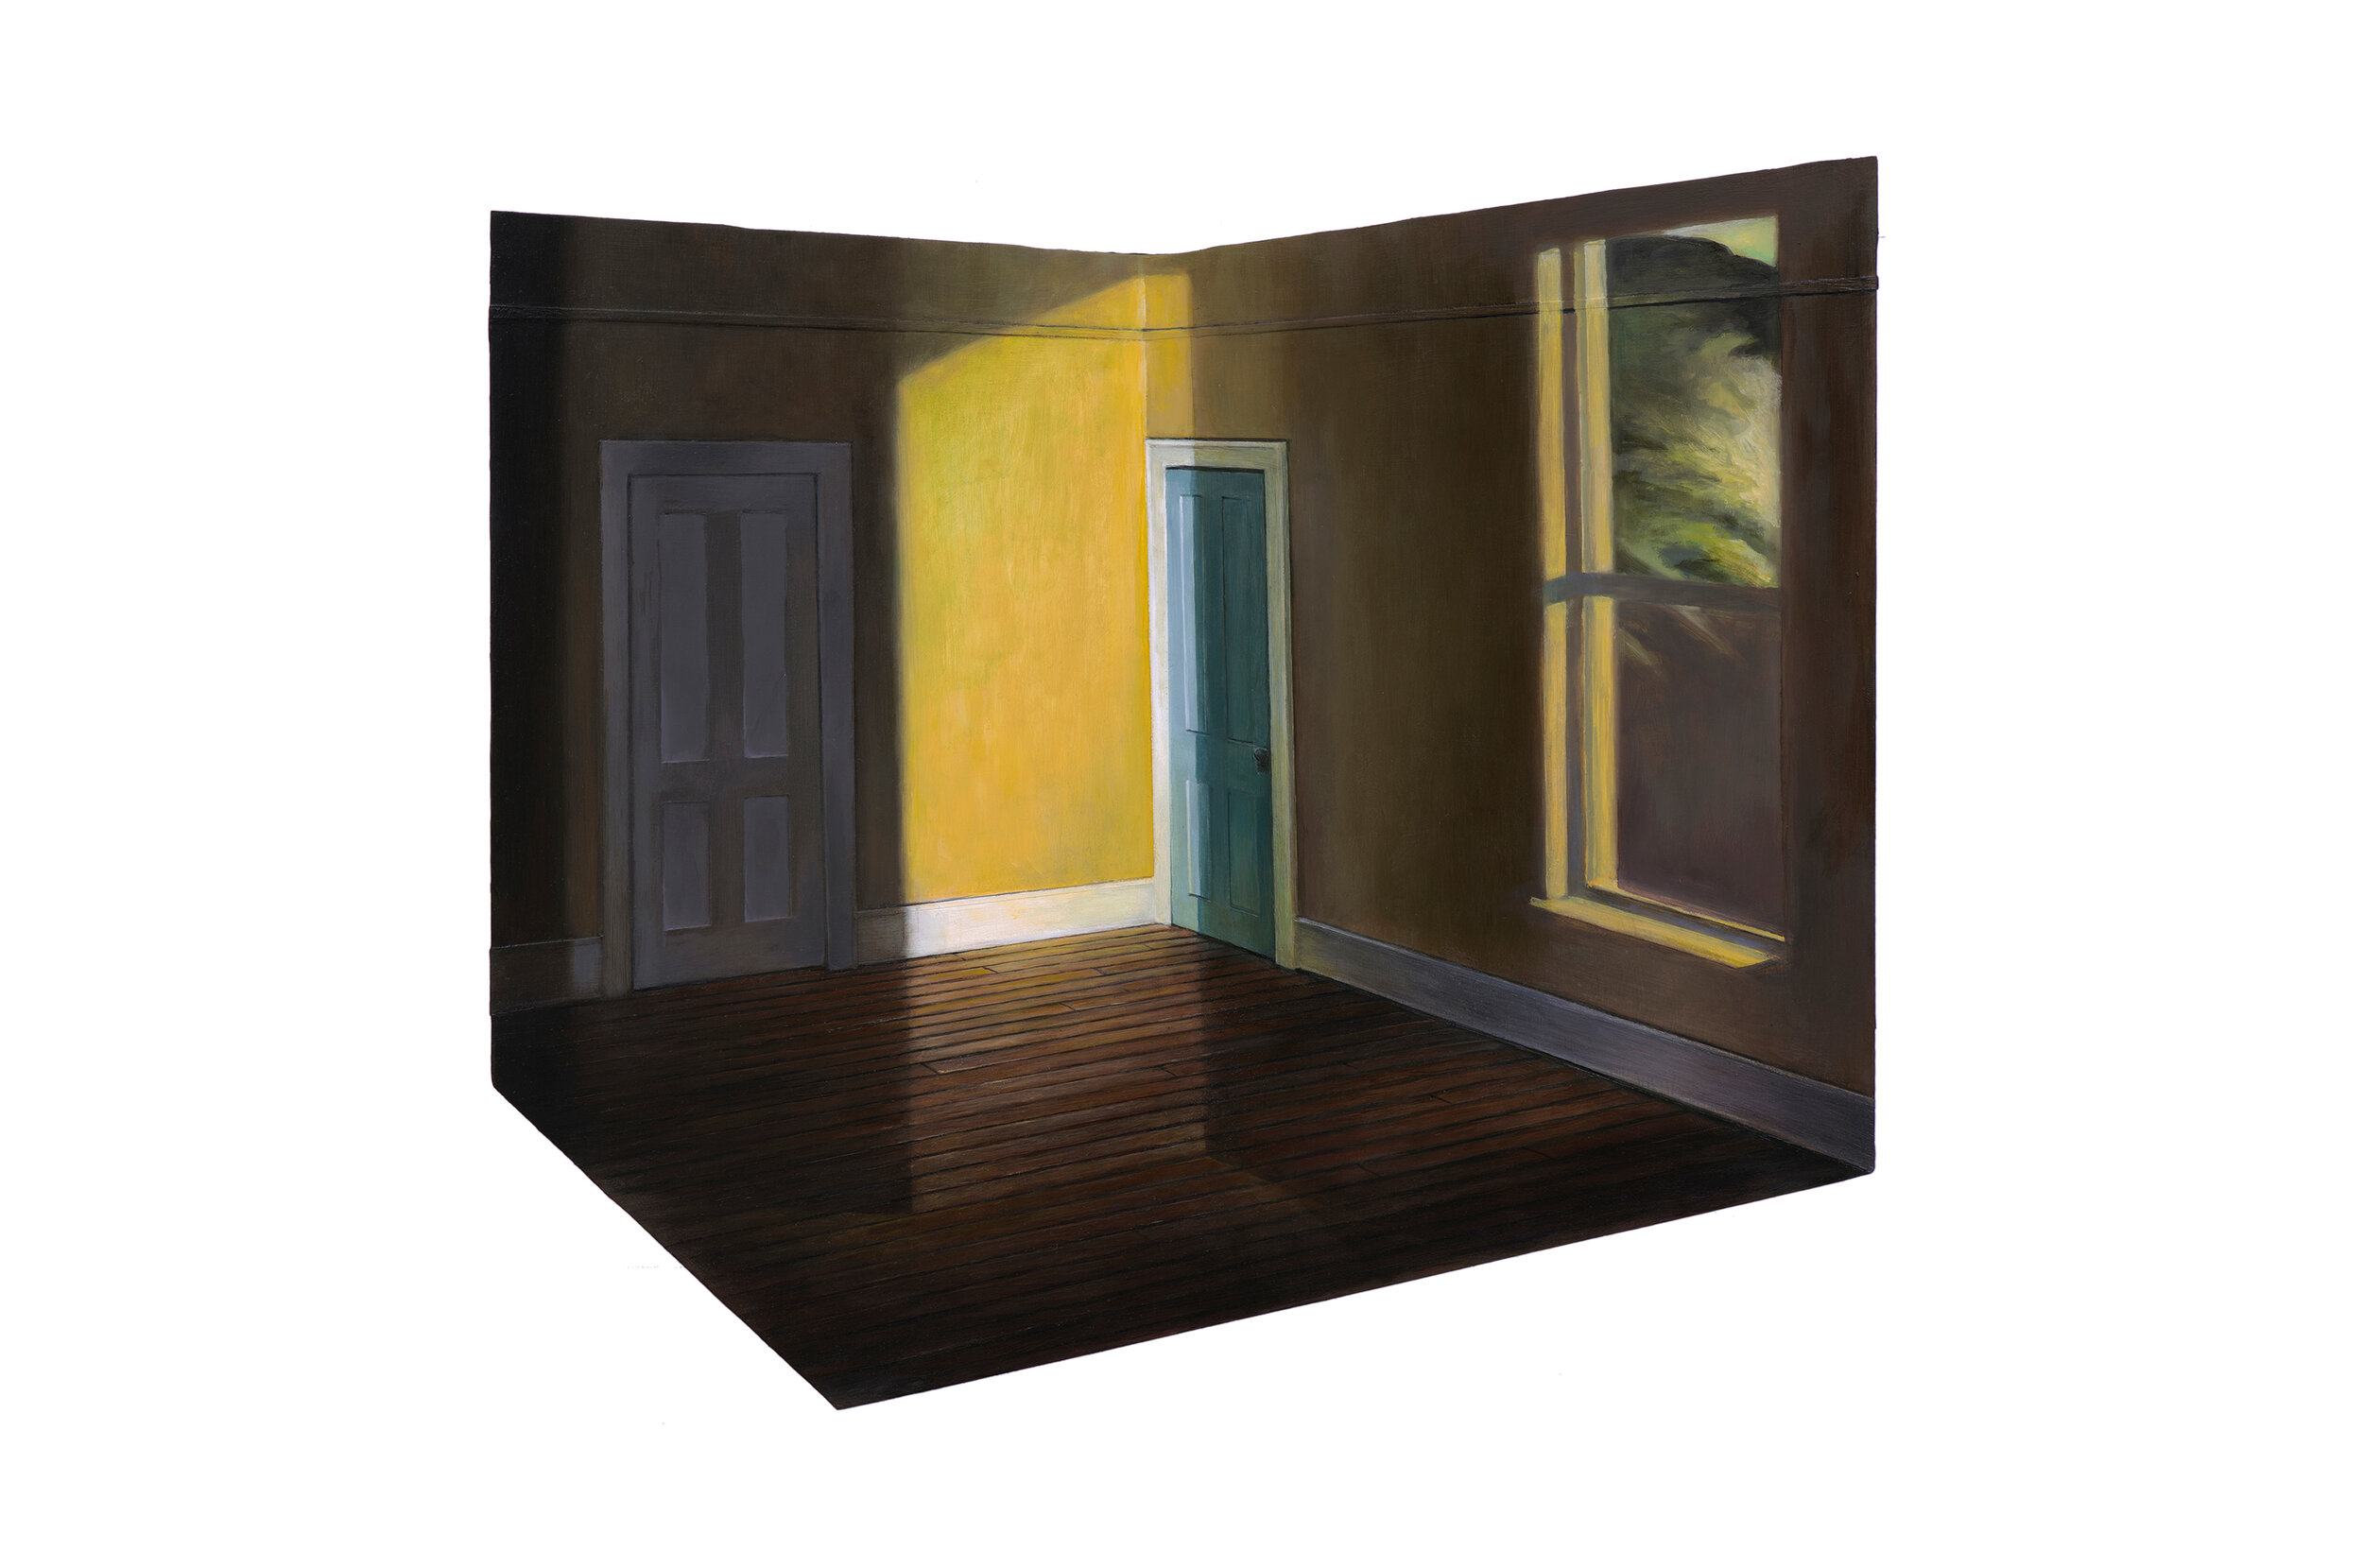 """Edward Hopper's """"Sun in an Empty Room"""" Projected over Hopper Bedroom Model   2019  Oil on shaped and raised relief panel  16 x 19 inches"""